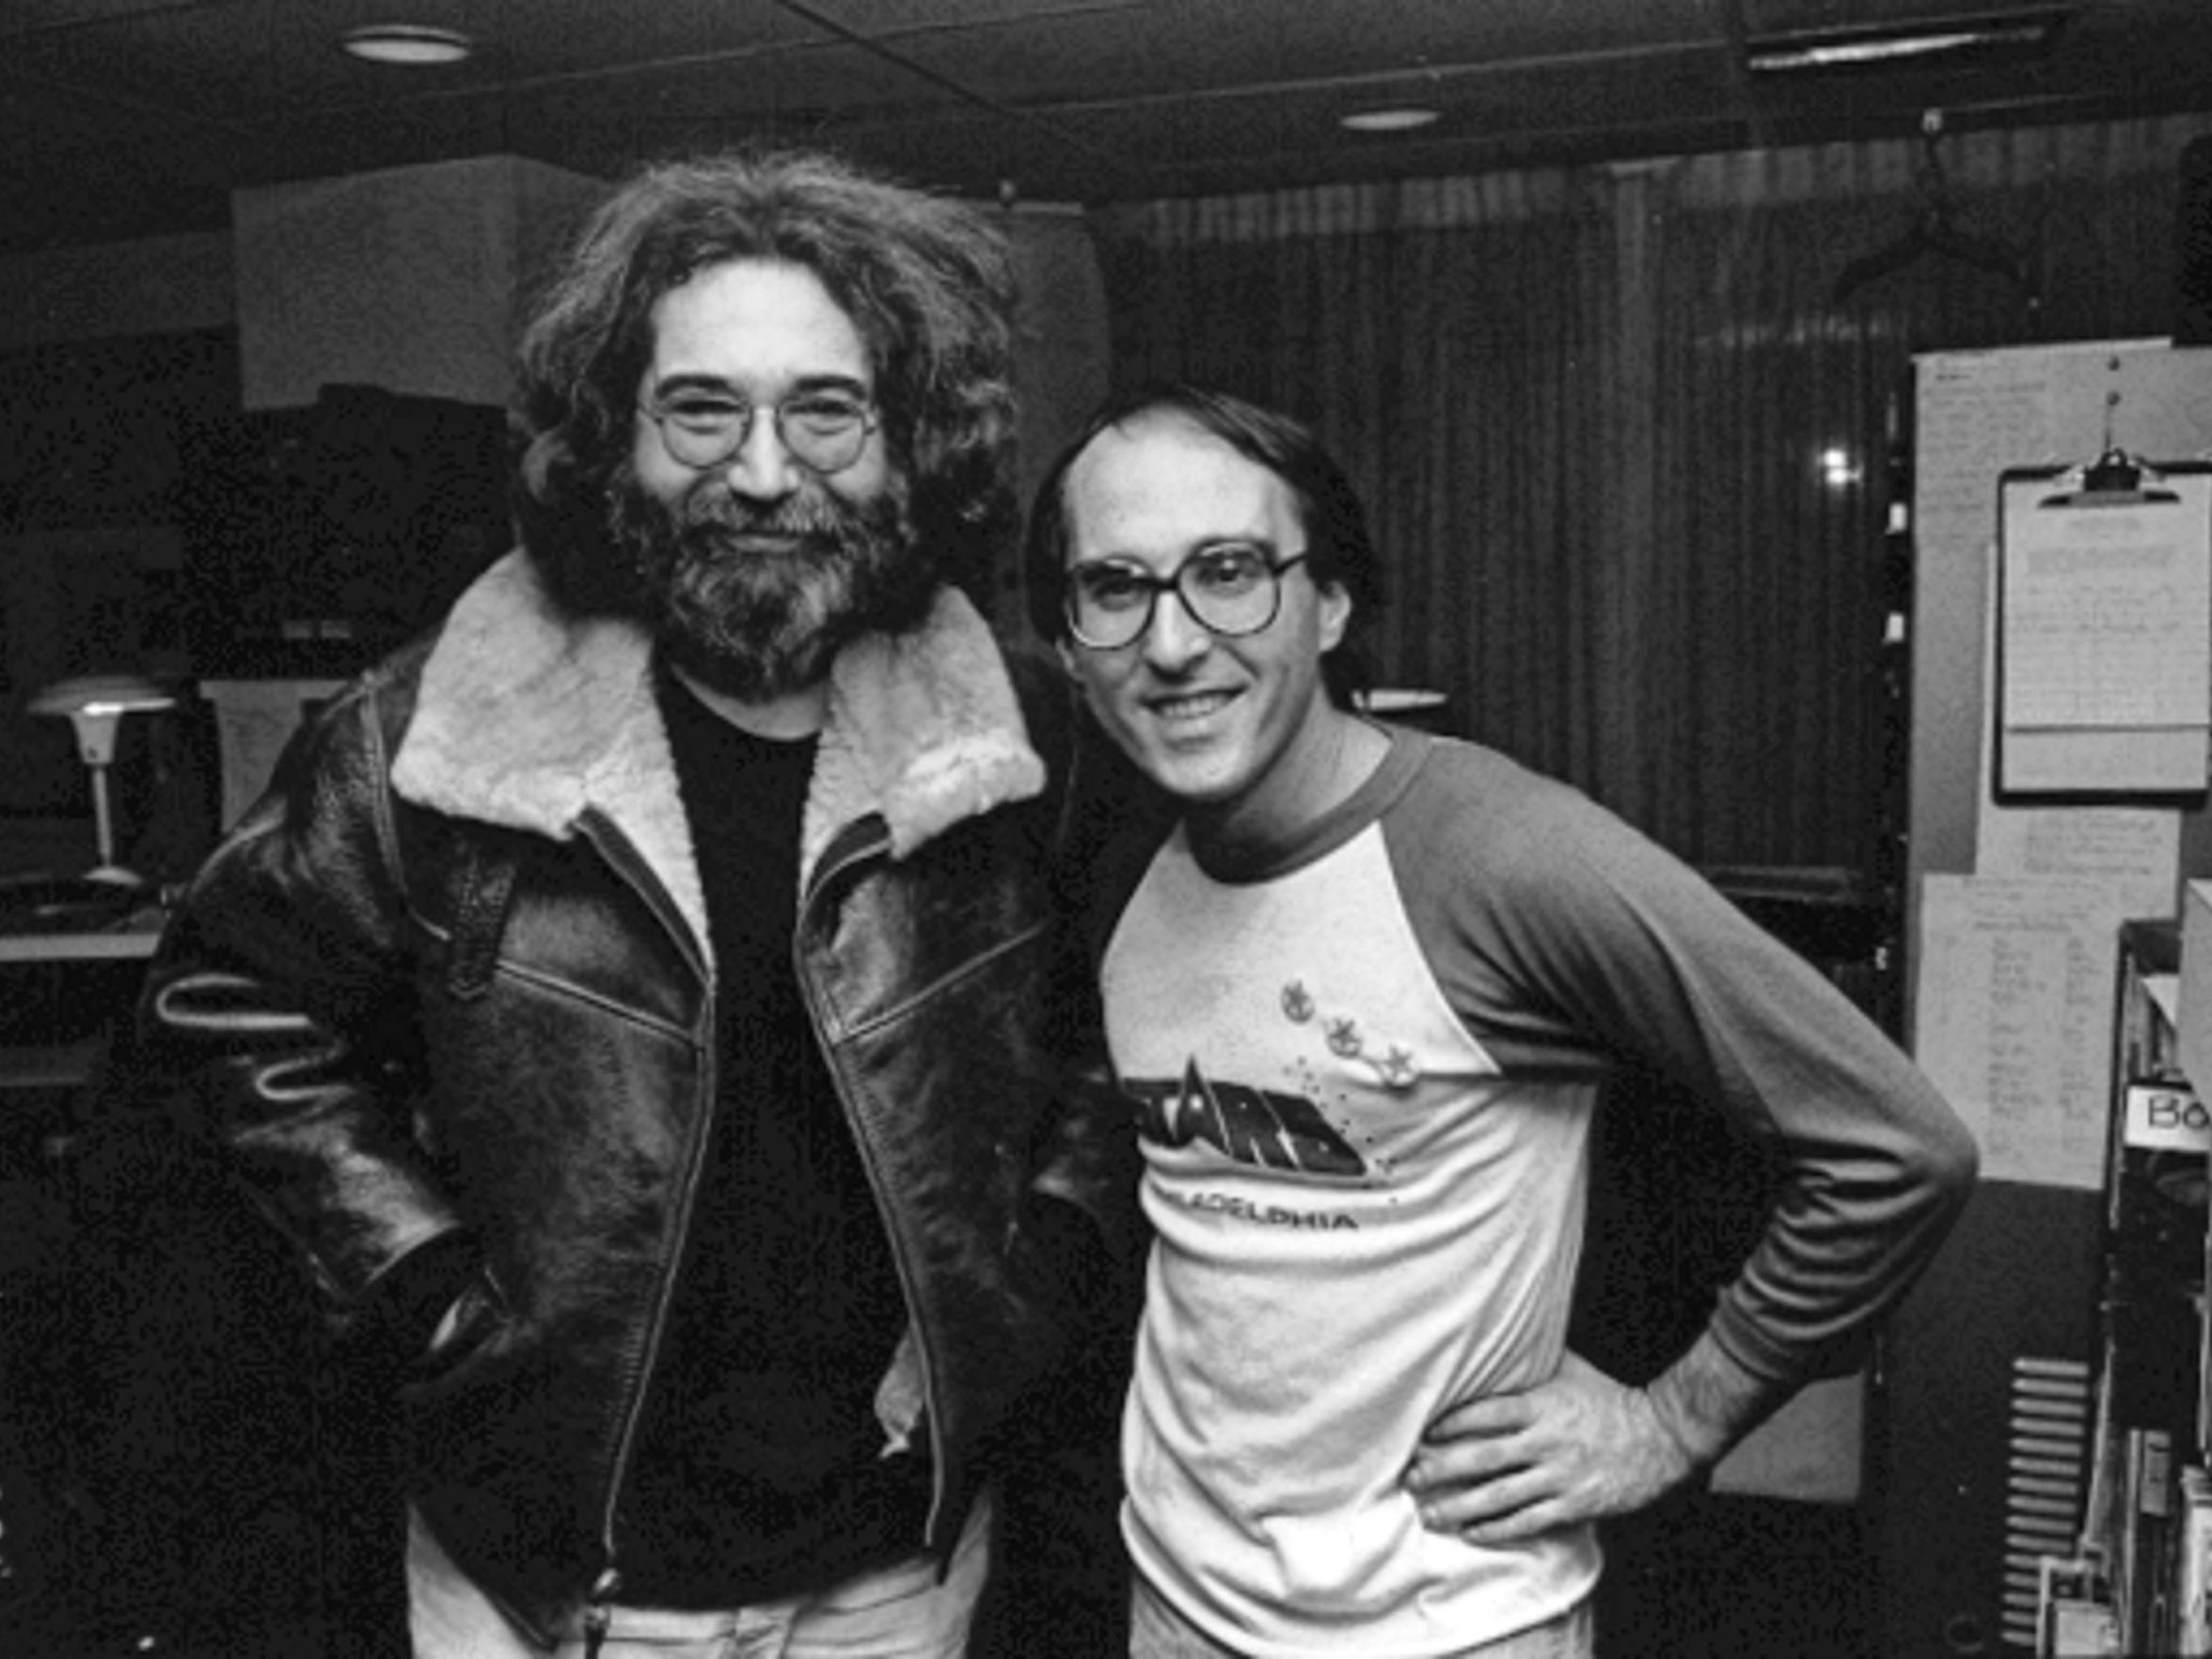 Michael Tearson shares a moment with Jerry Garcia.